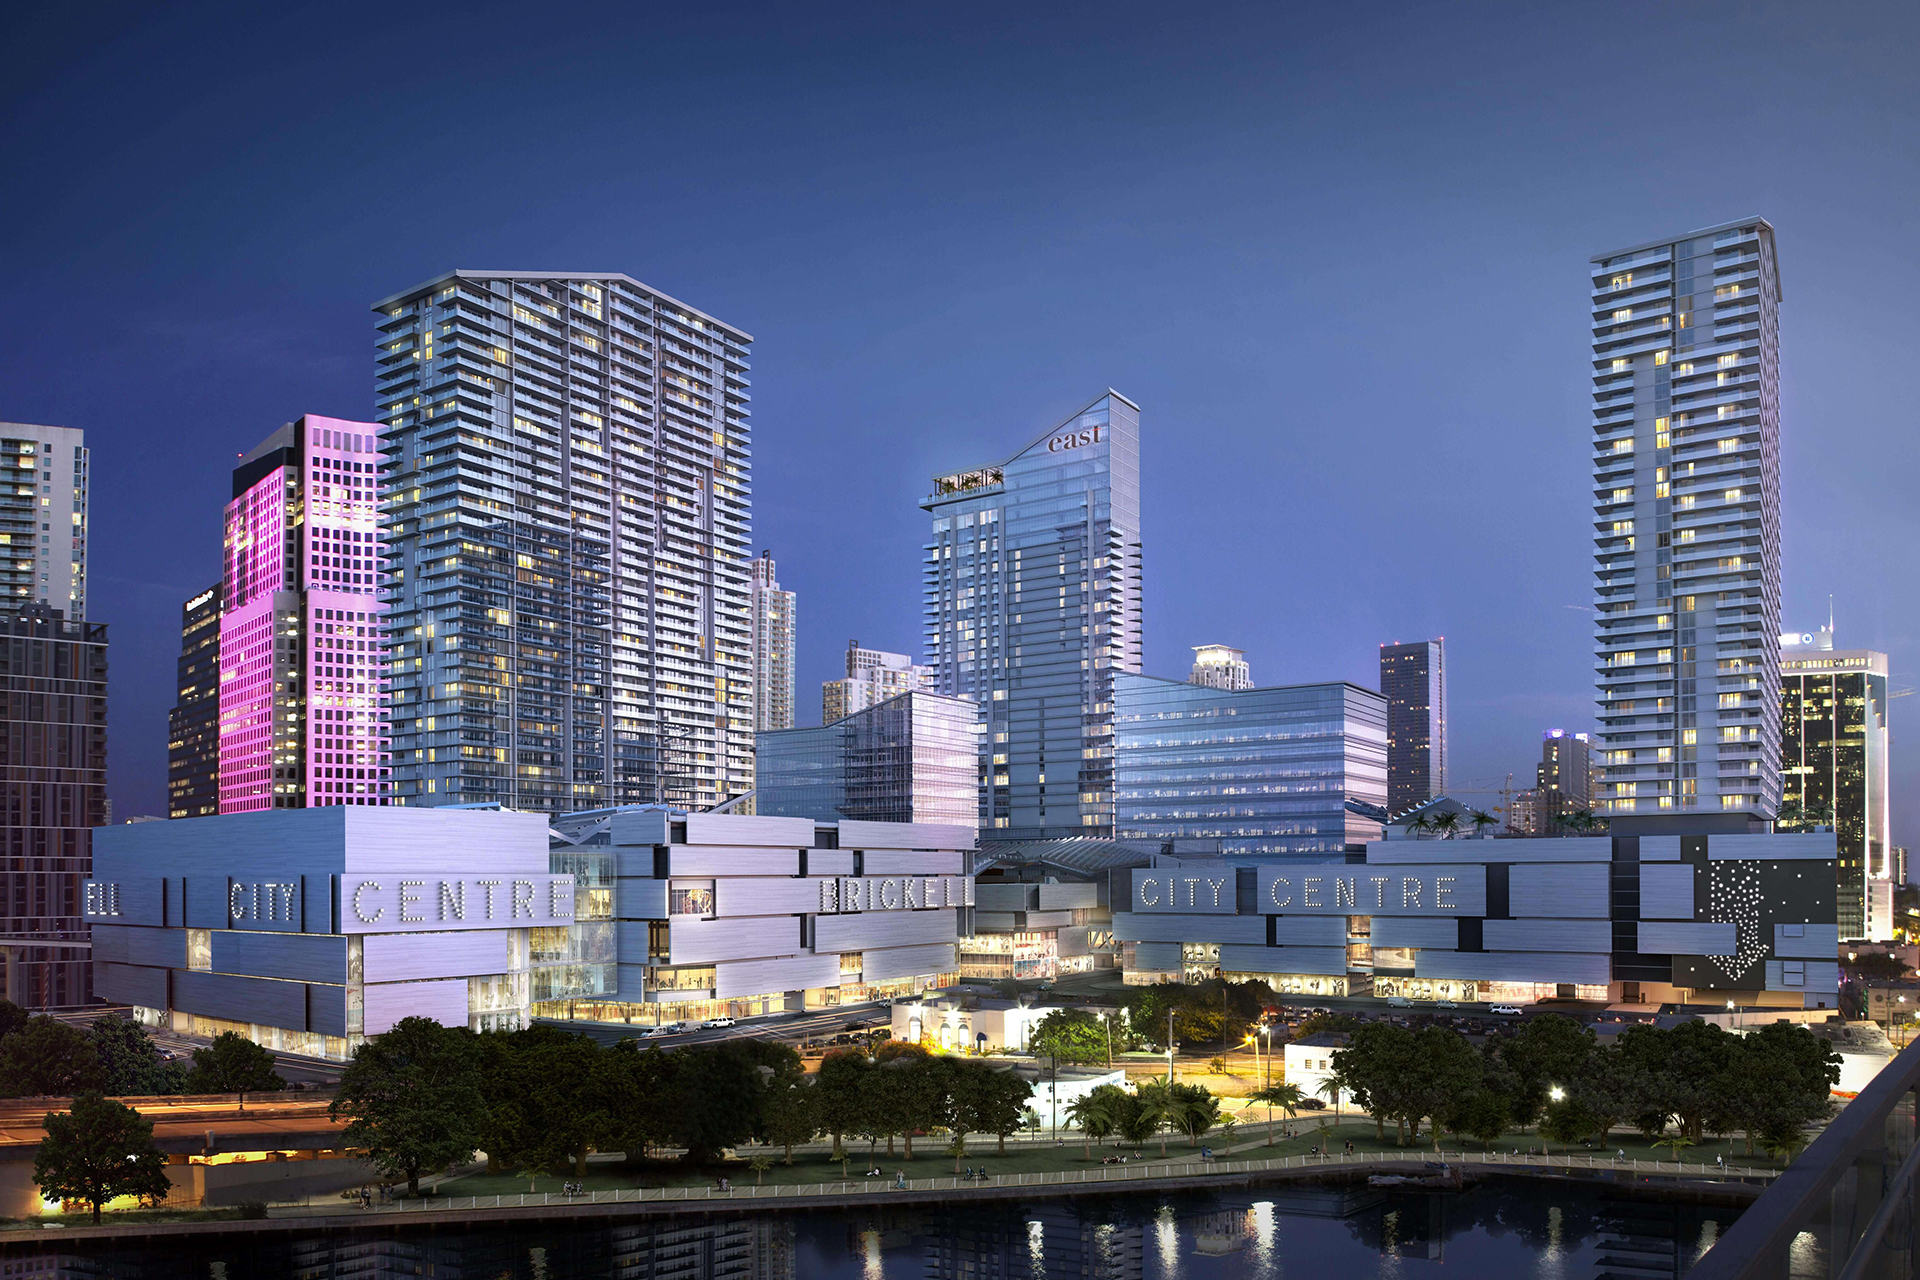 Brickell City Centre - Main Image